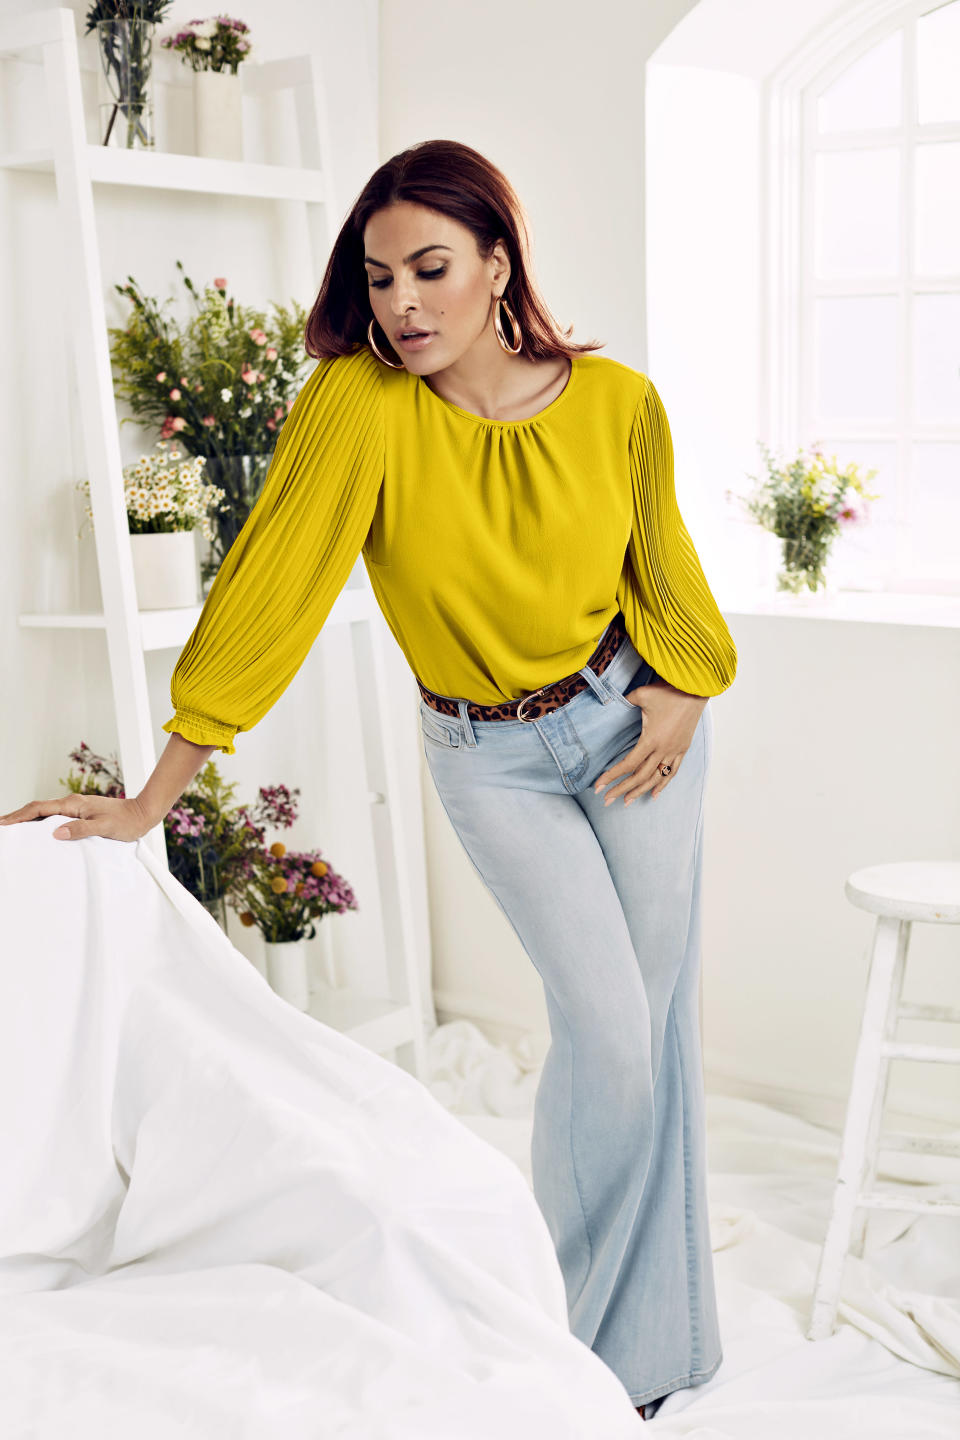 Eva Mendes x New York & Company Layla Blouse and Carie Denim Wide Leg Pant (Photo: New York & Company)